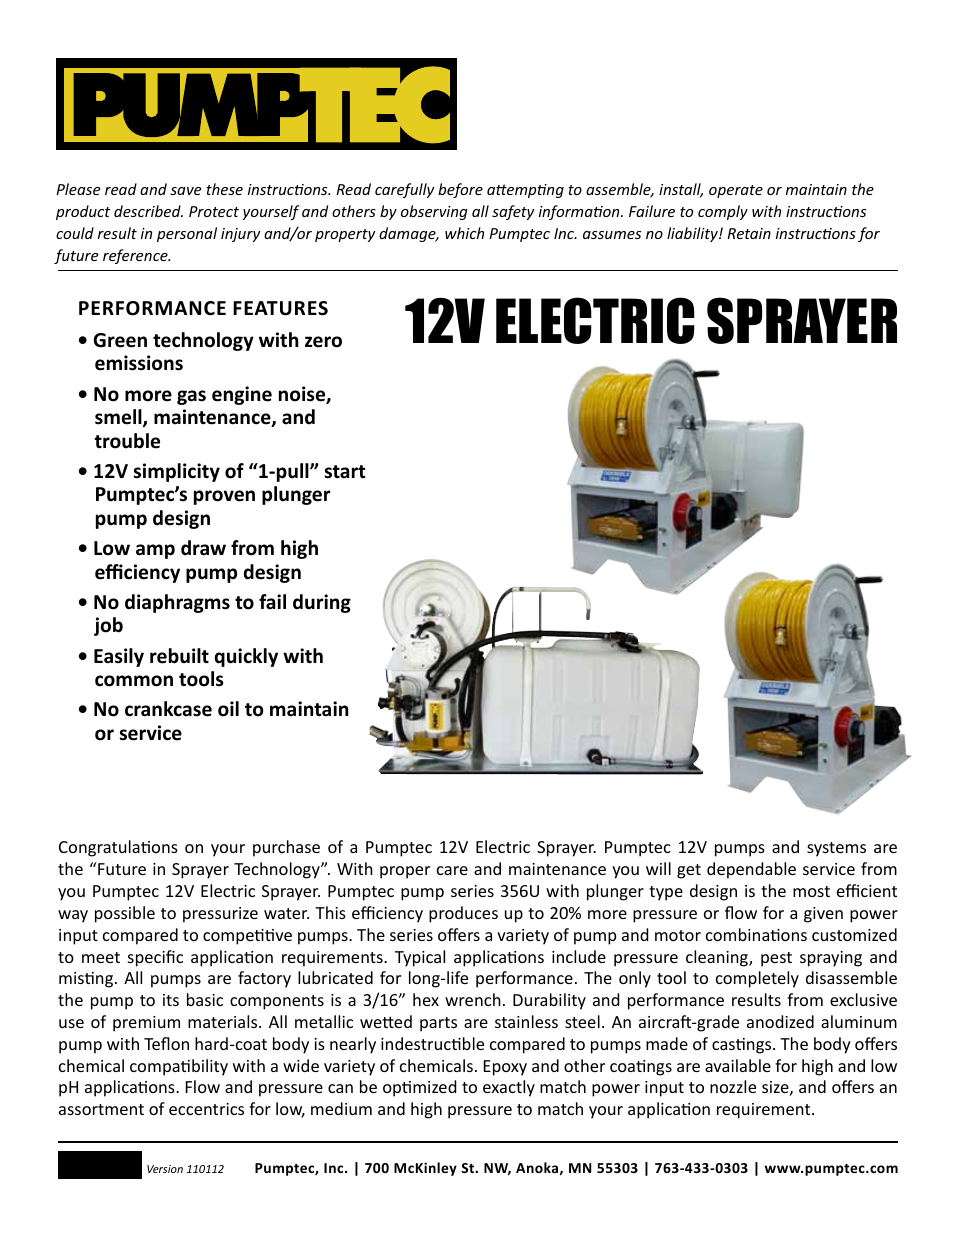 Pumptec ELECTRIC SPRAYER 12V User Manual   23 pages